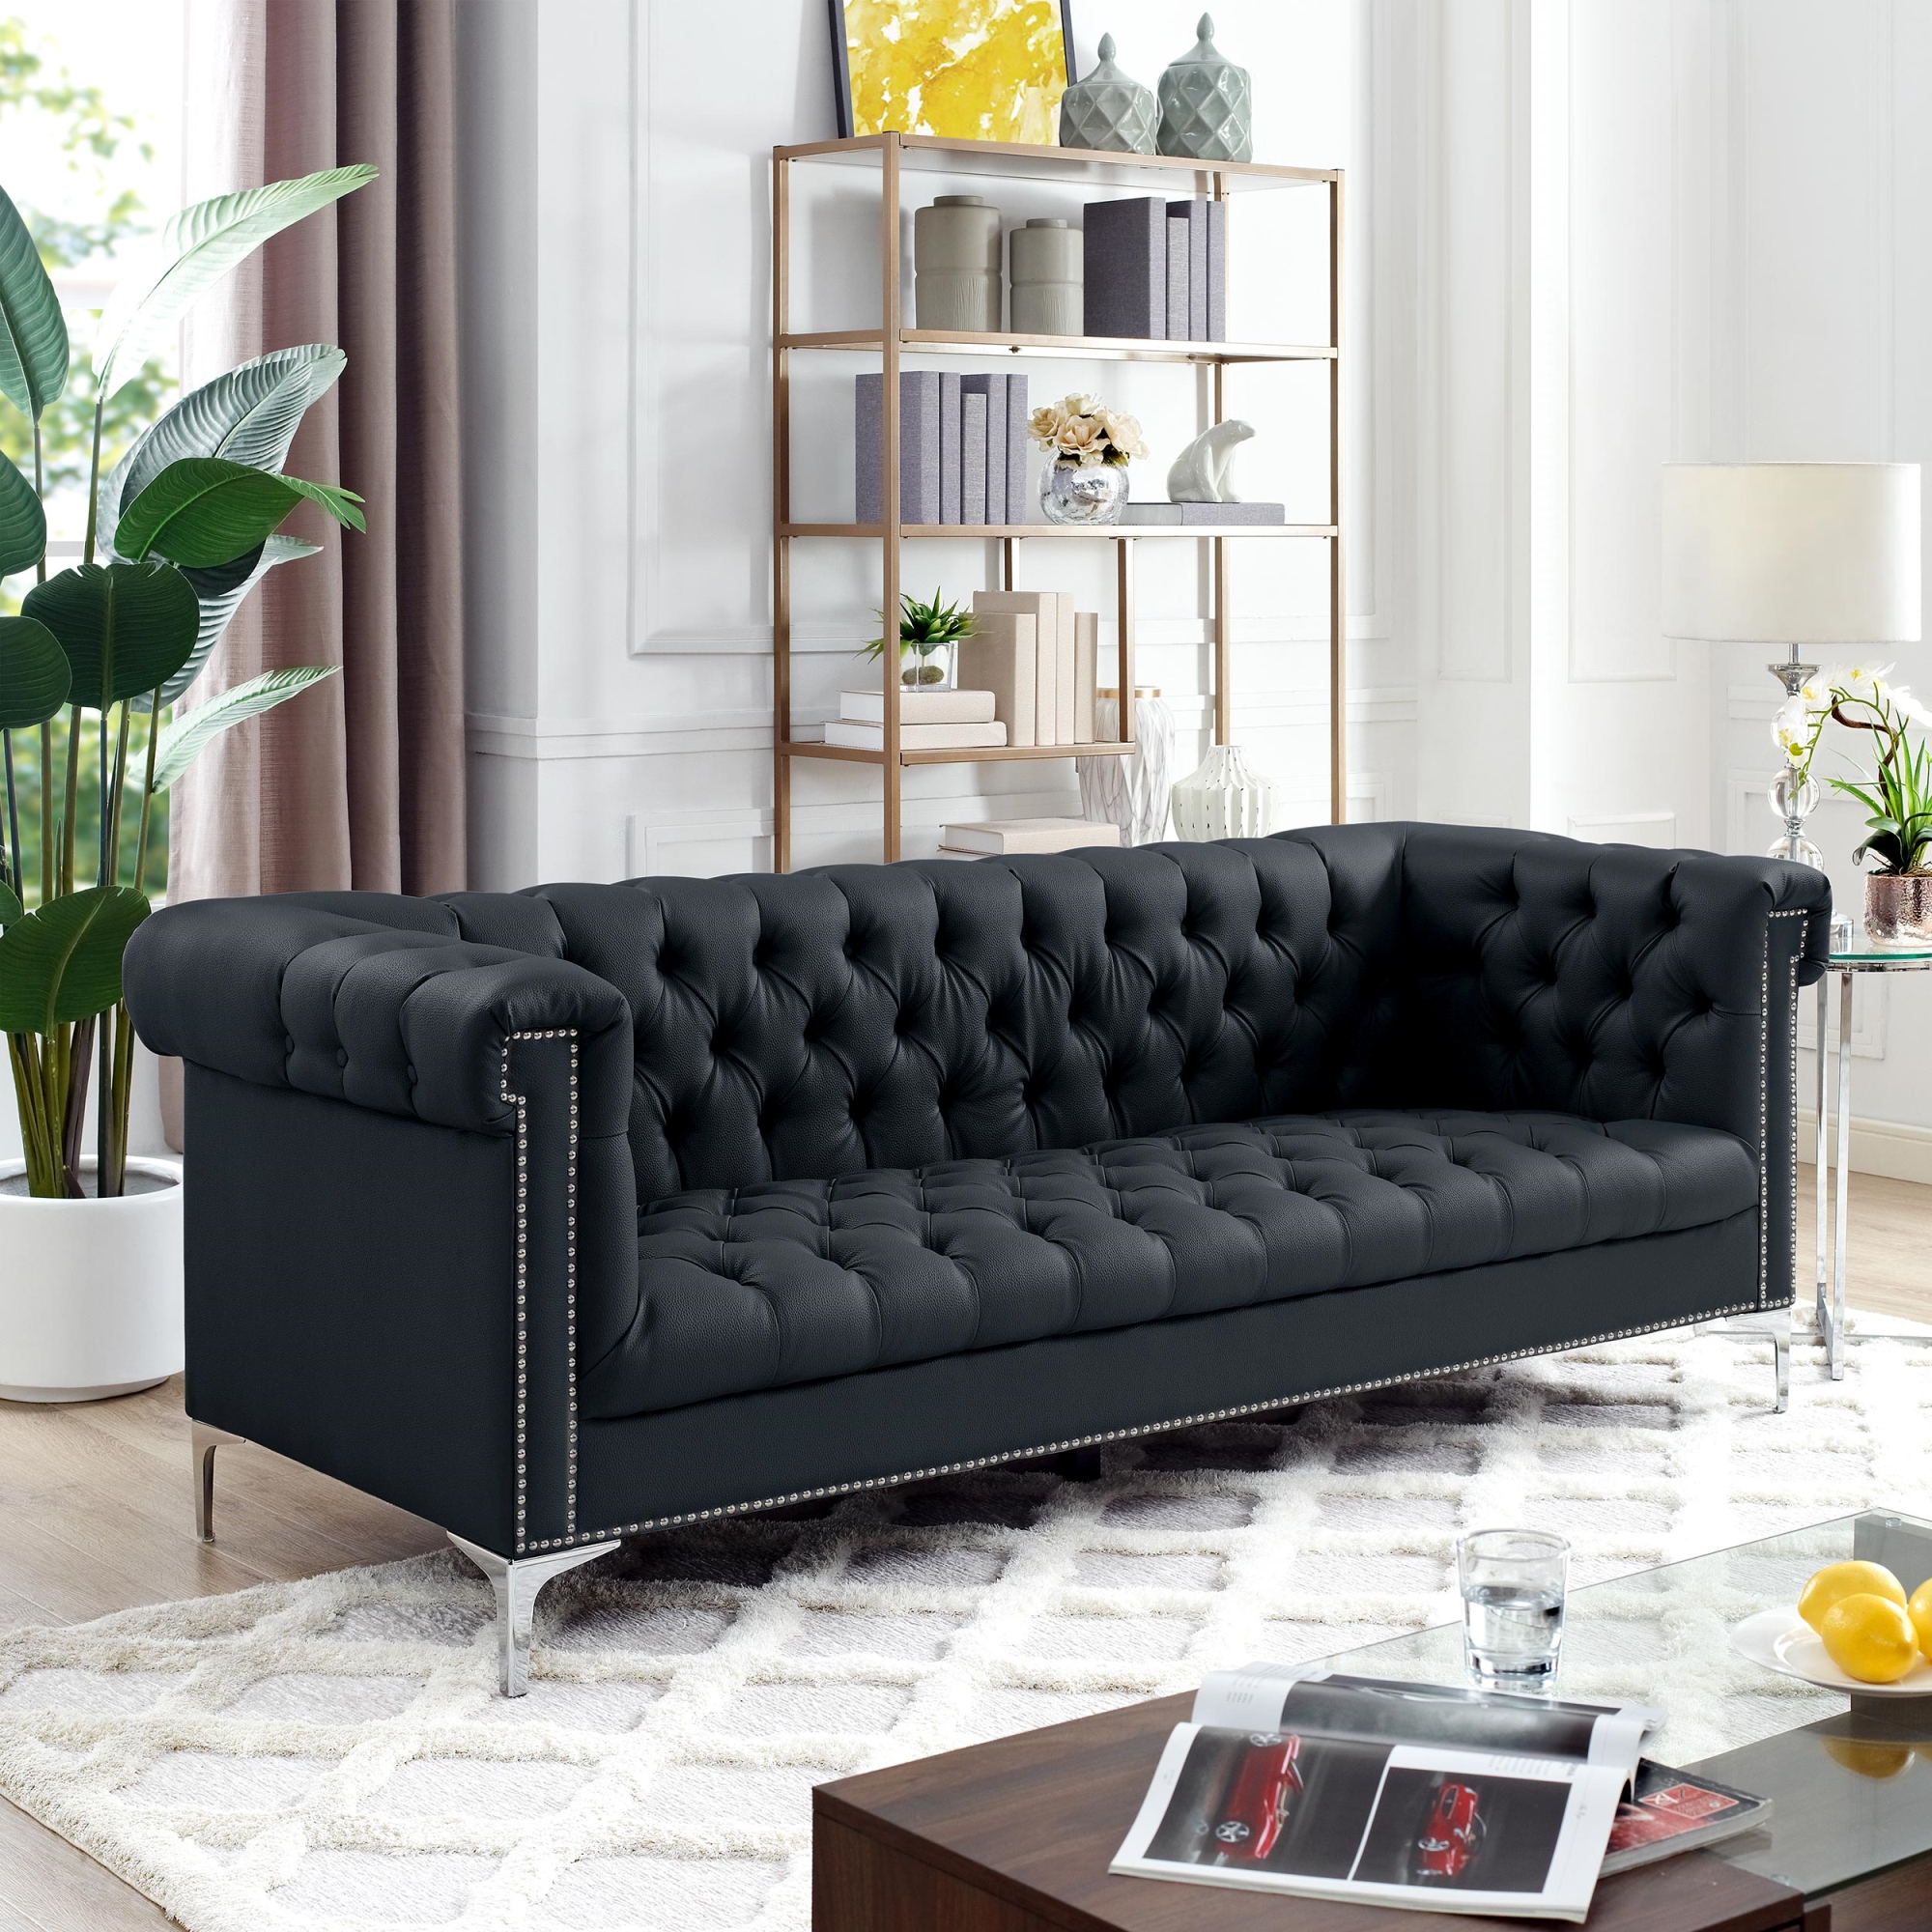 Inspired Home Black PU Leather Sofa Button Tufted Silver Nailhead Trim